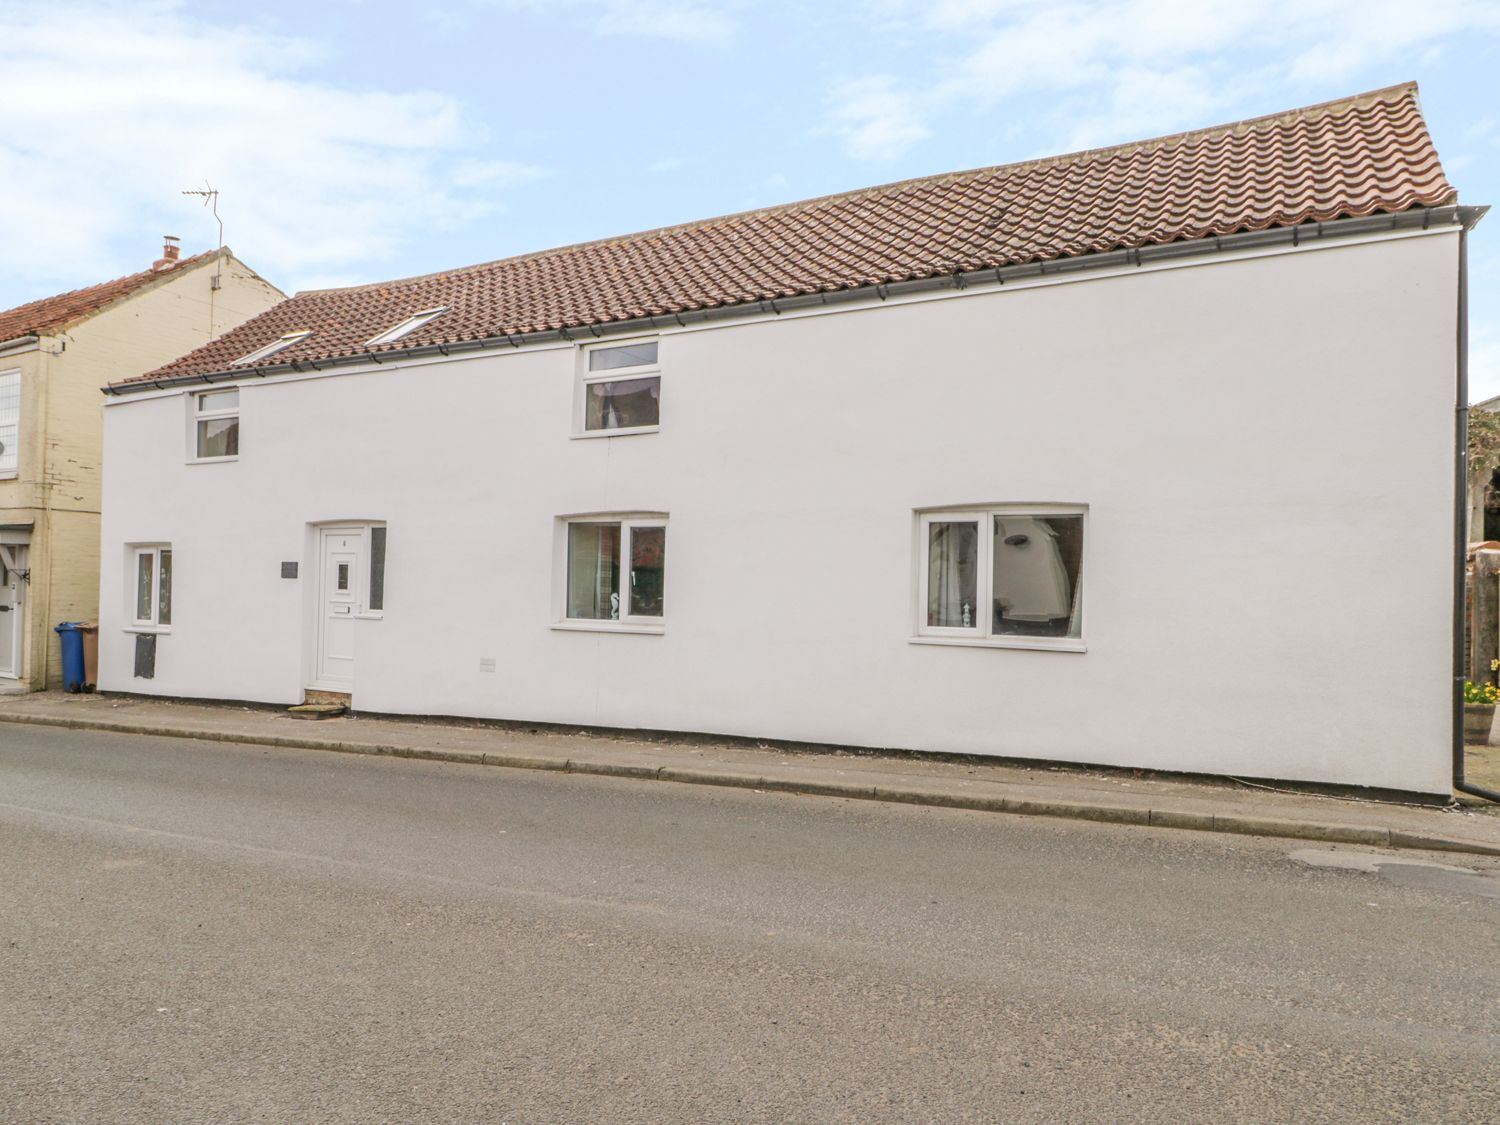 5 Cliff Lane - Whitby & North Yorkshire - 958277 - photo 1